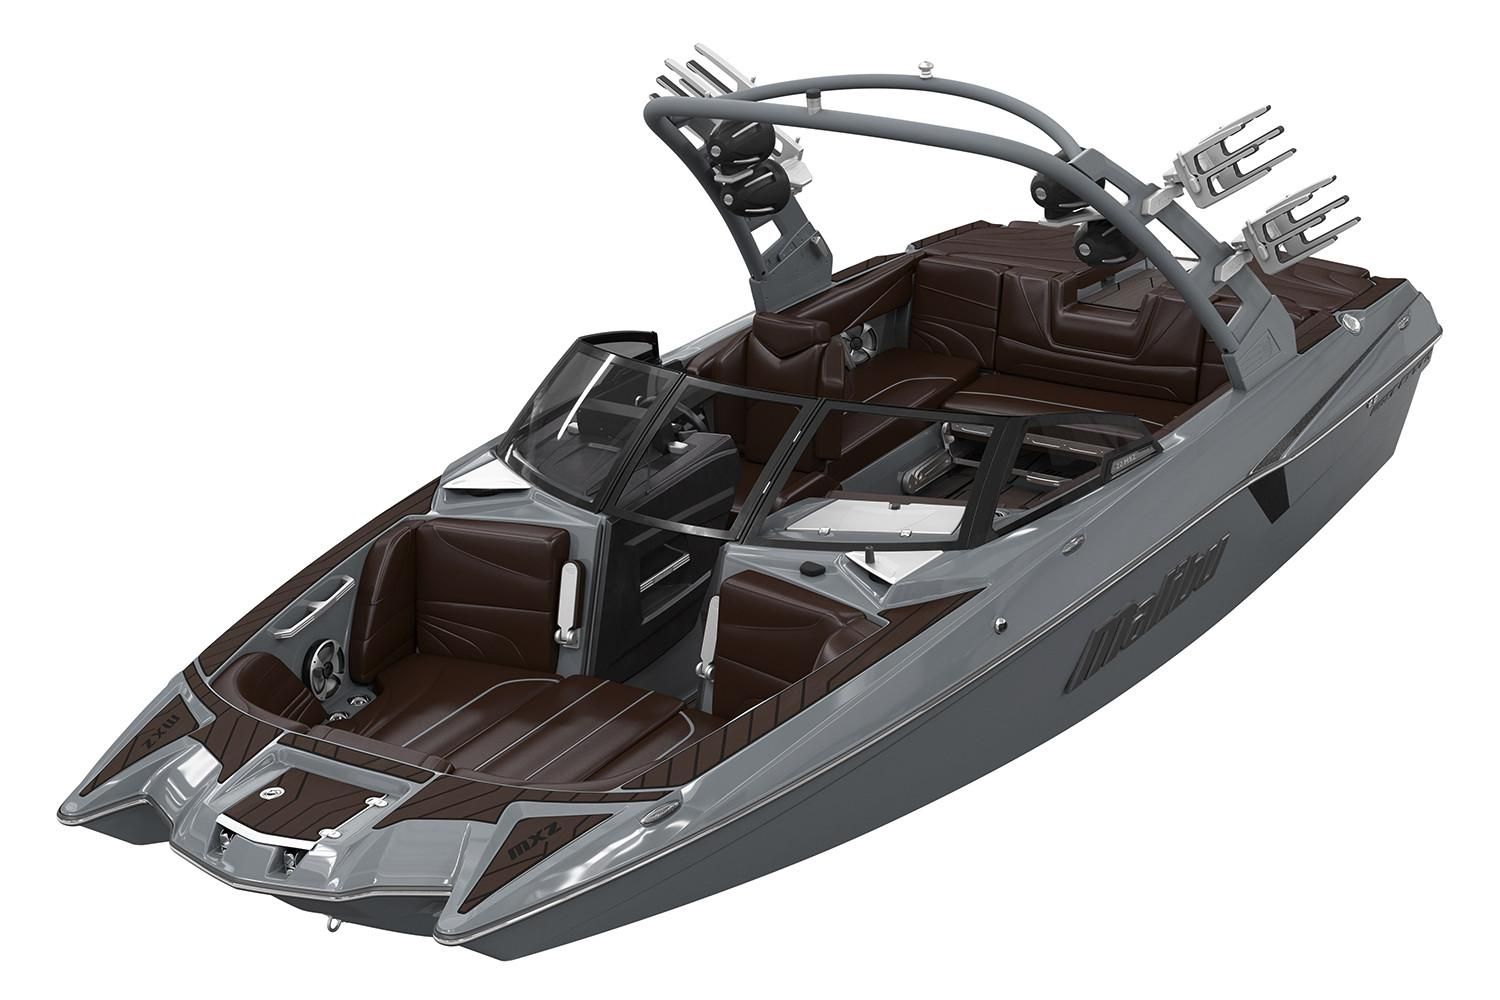 2020 Malibu Wakesetter 22 MXZ in Rapid City, South Dakota - Photo 8